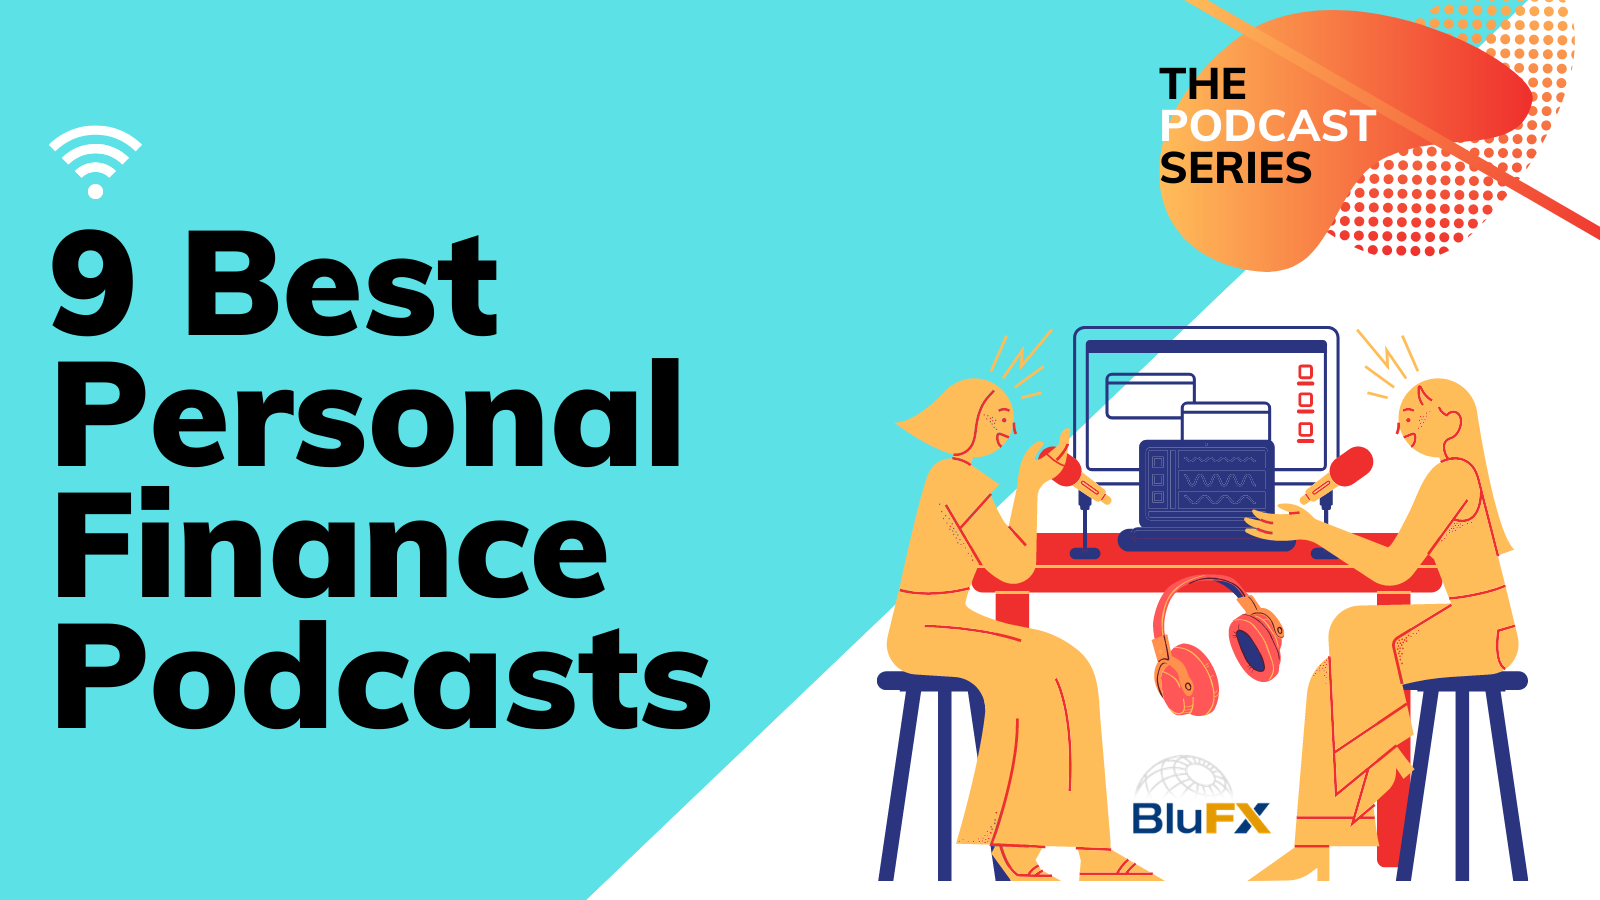 9 Best Personal Finance Podcasts